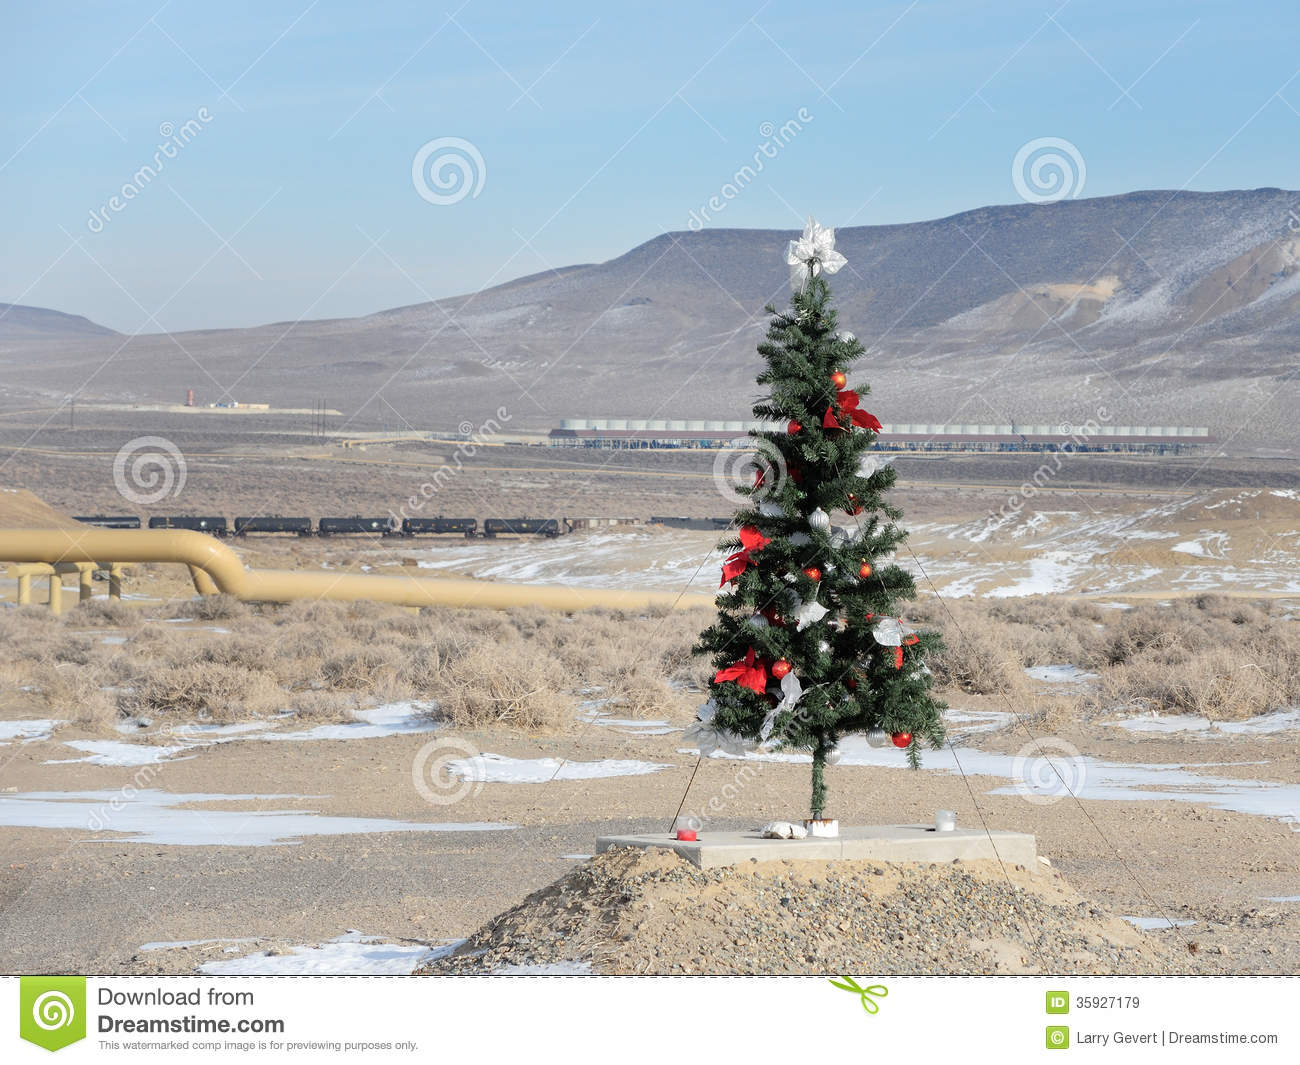 Christmas Tree In The Desert.Unusual Place For A Christmas Tree Stock Image Image Of